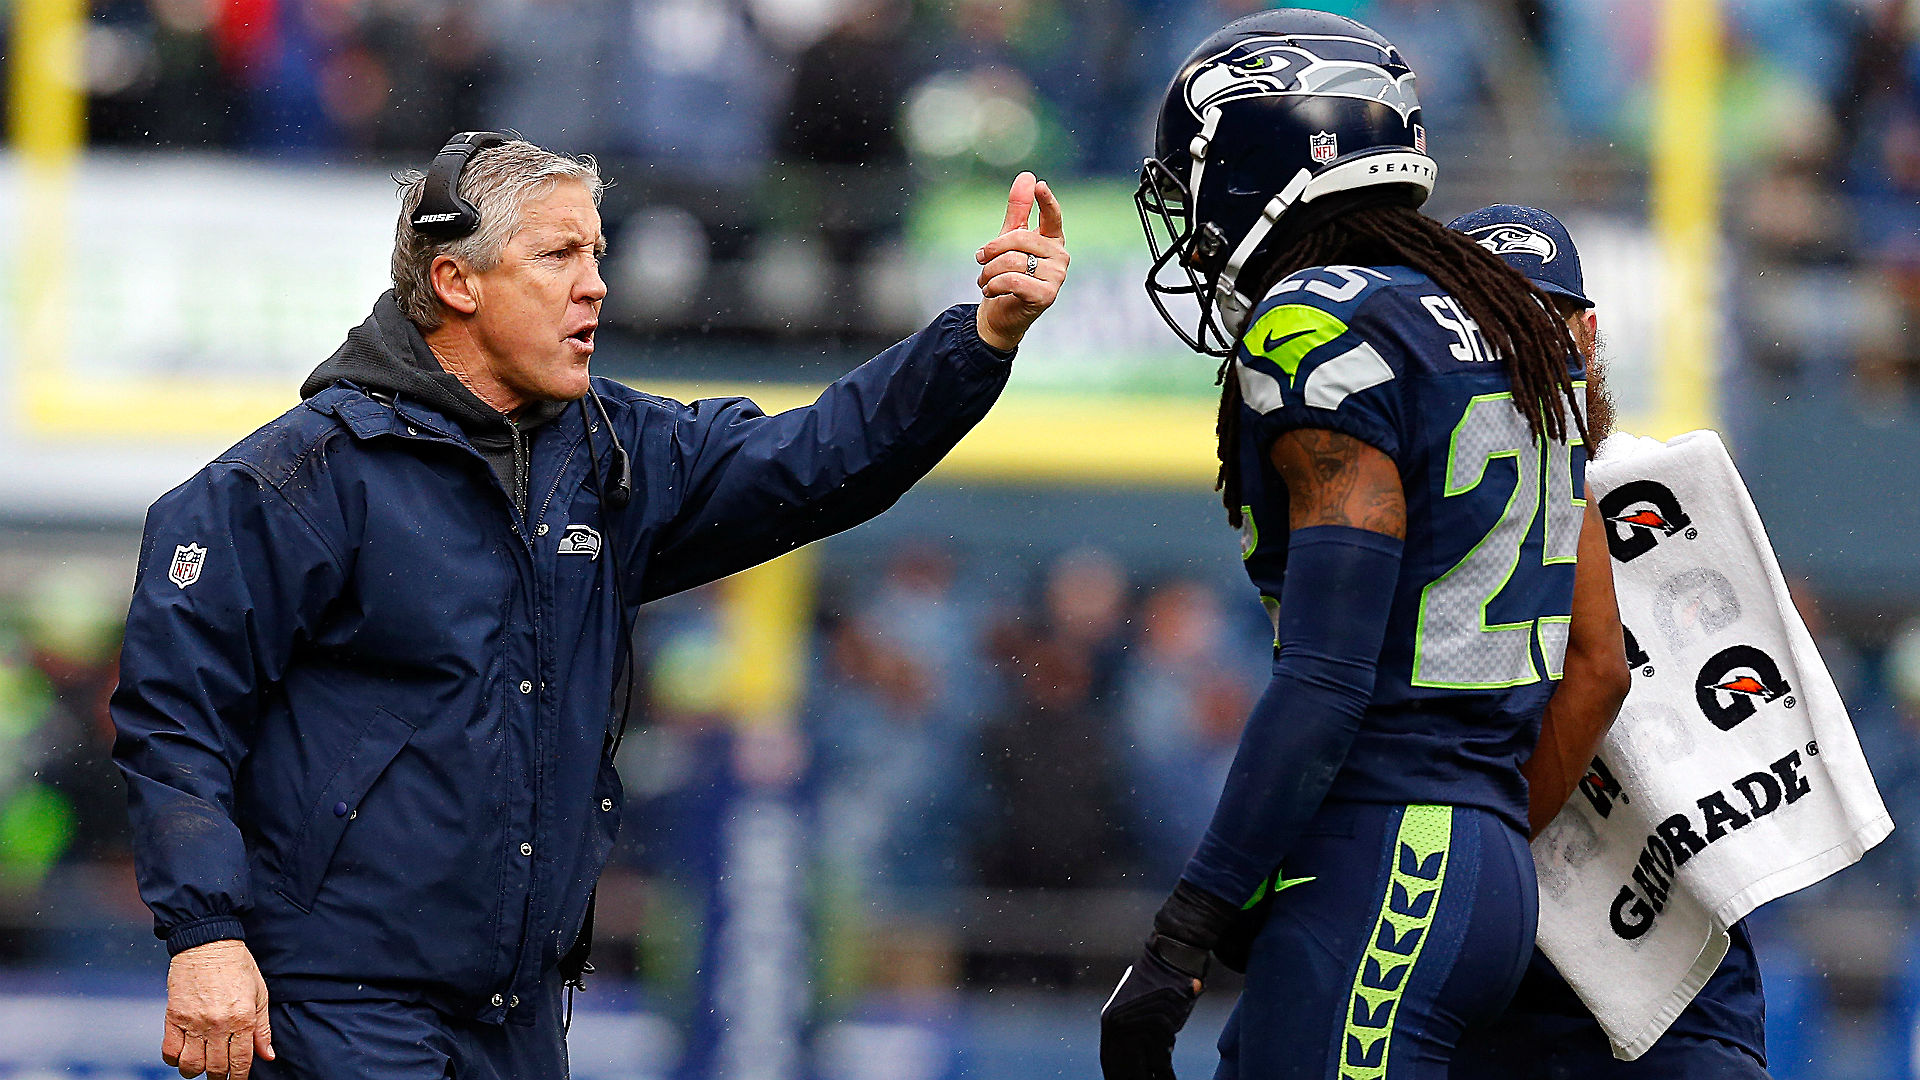 Super Bowl XLIX handicapping – Putting the Seahawks under the microscope